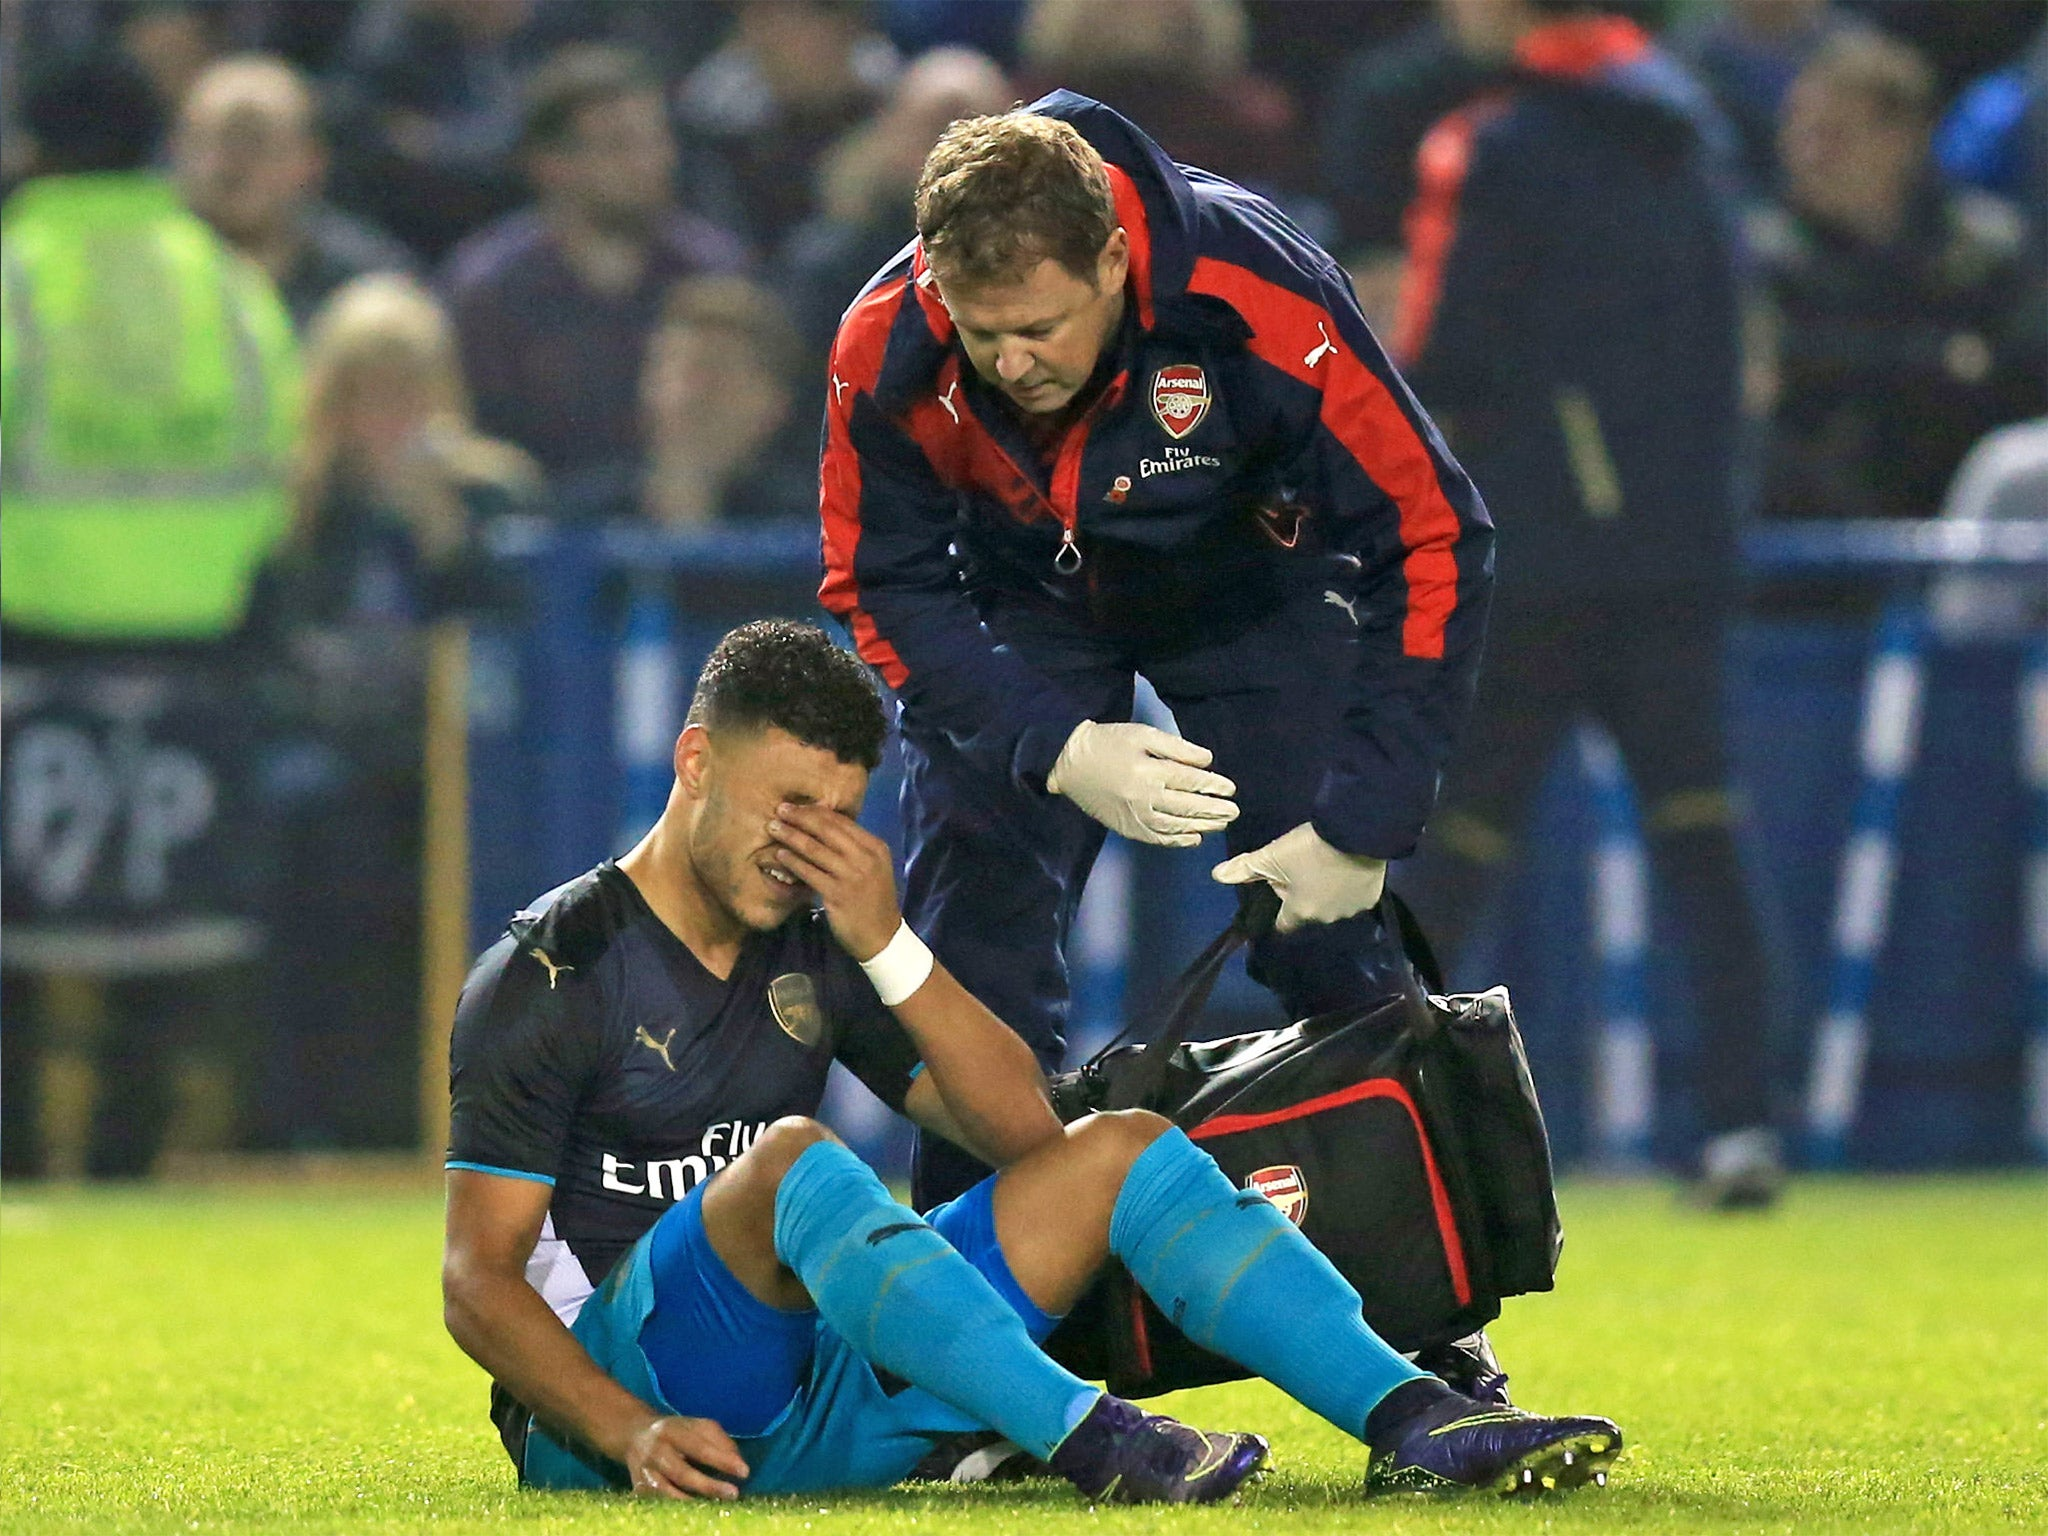 Arsenal injury list: Alex Oxlade-Chamberlain to return for Norwich but game too soon for Theo Walcott